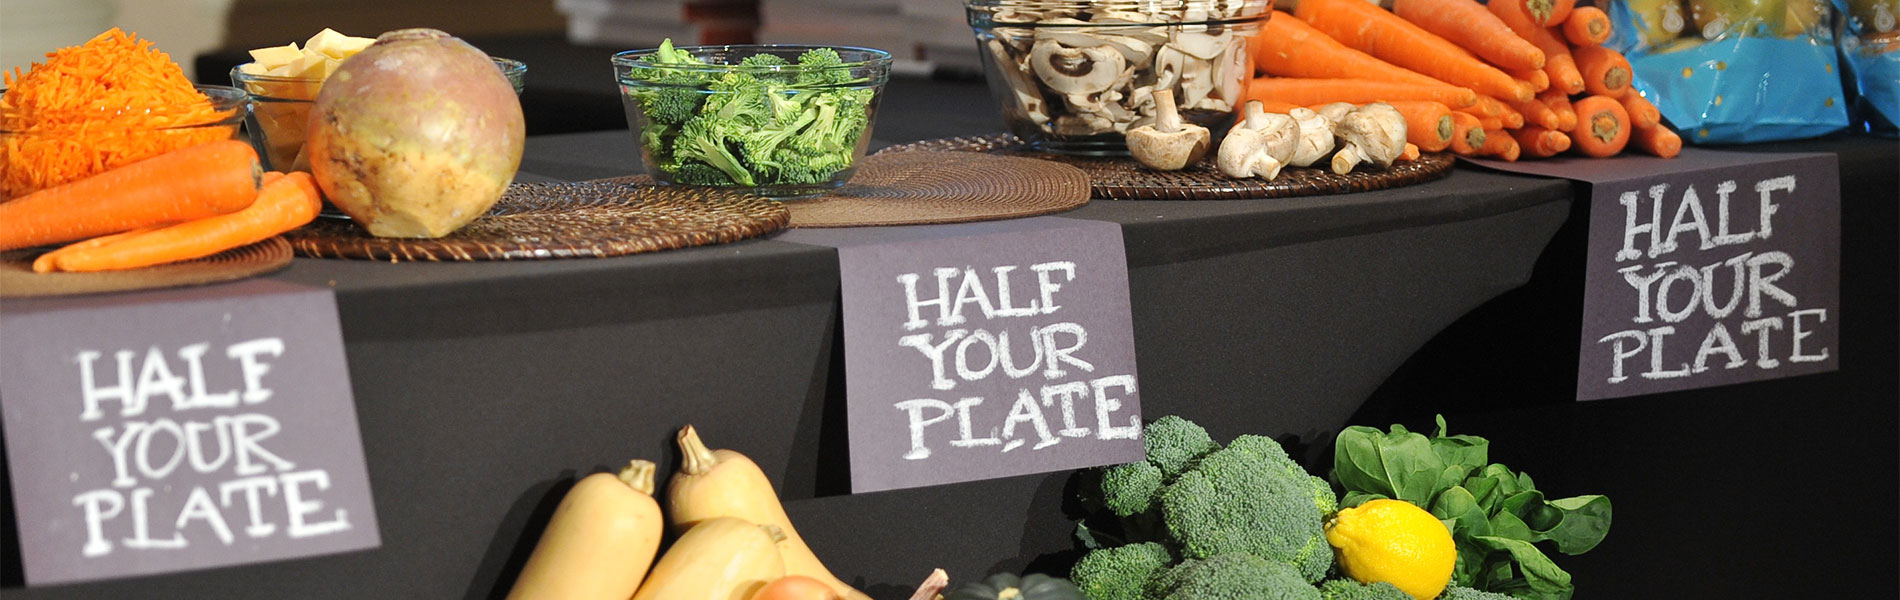 halfyourplate_banner